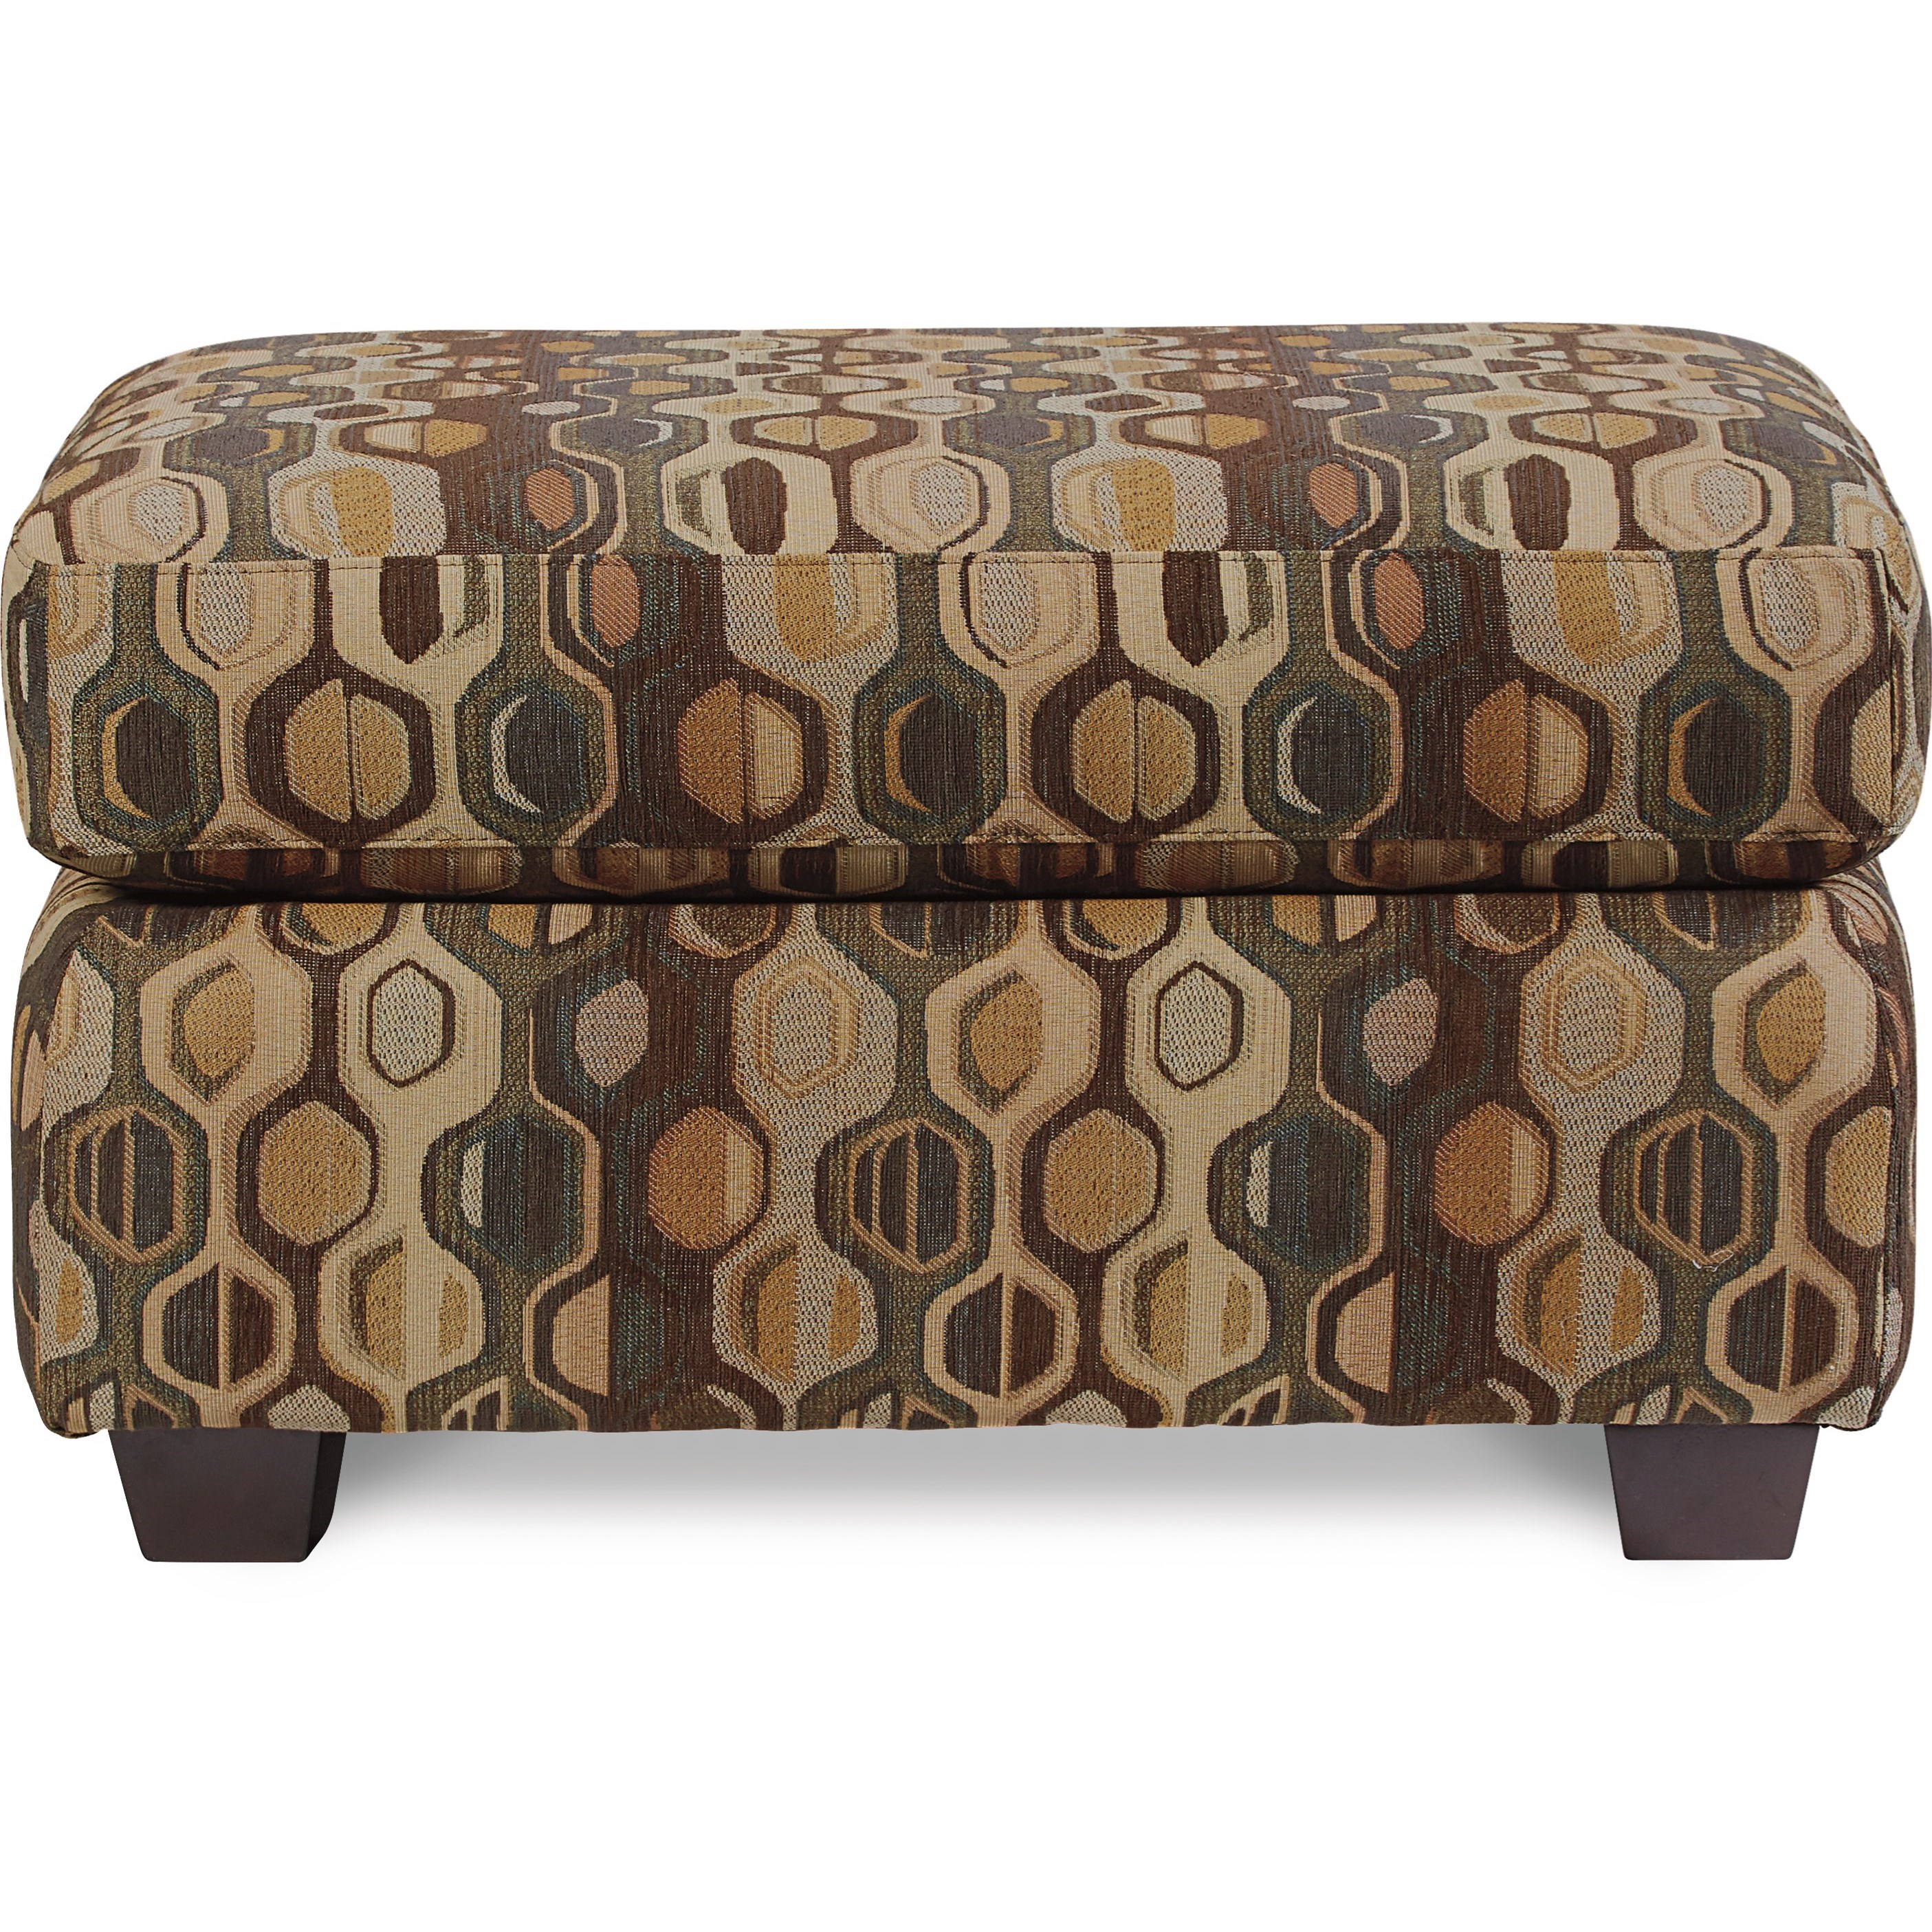 Amy Ottoman by La-Z-Boy at Bennett's Furniture and Mattresses